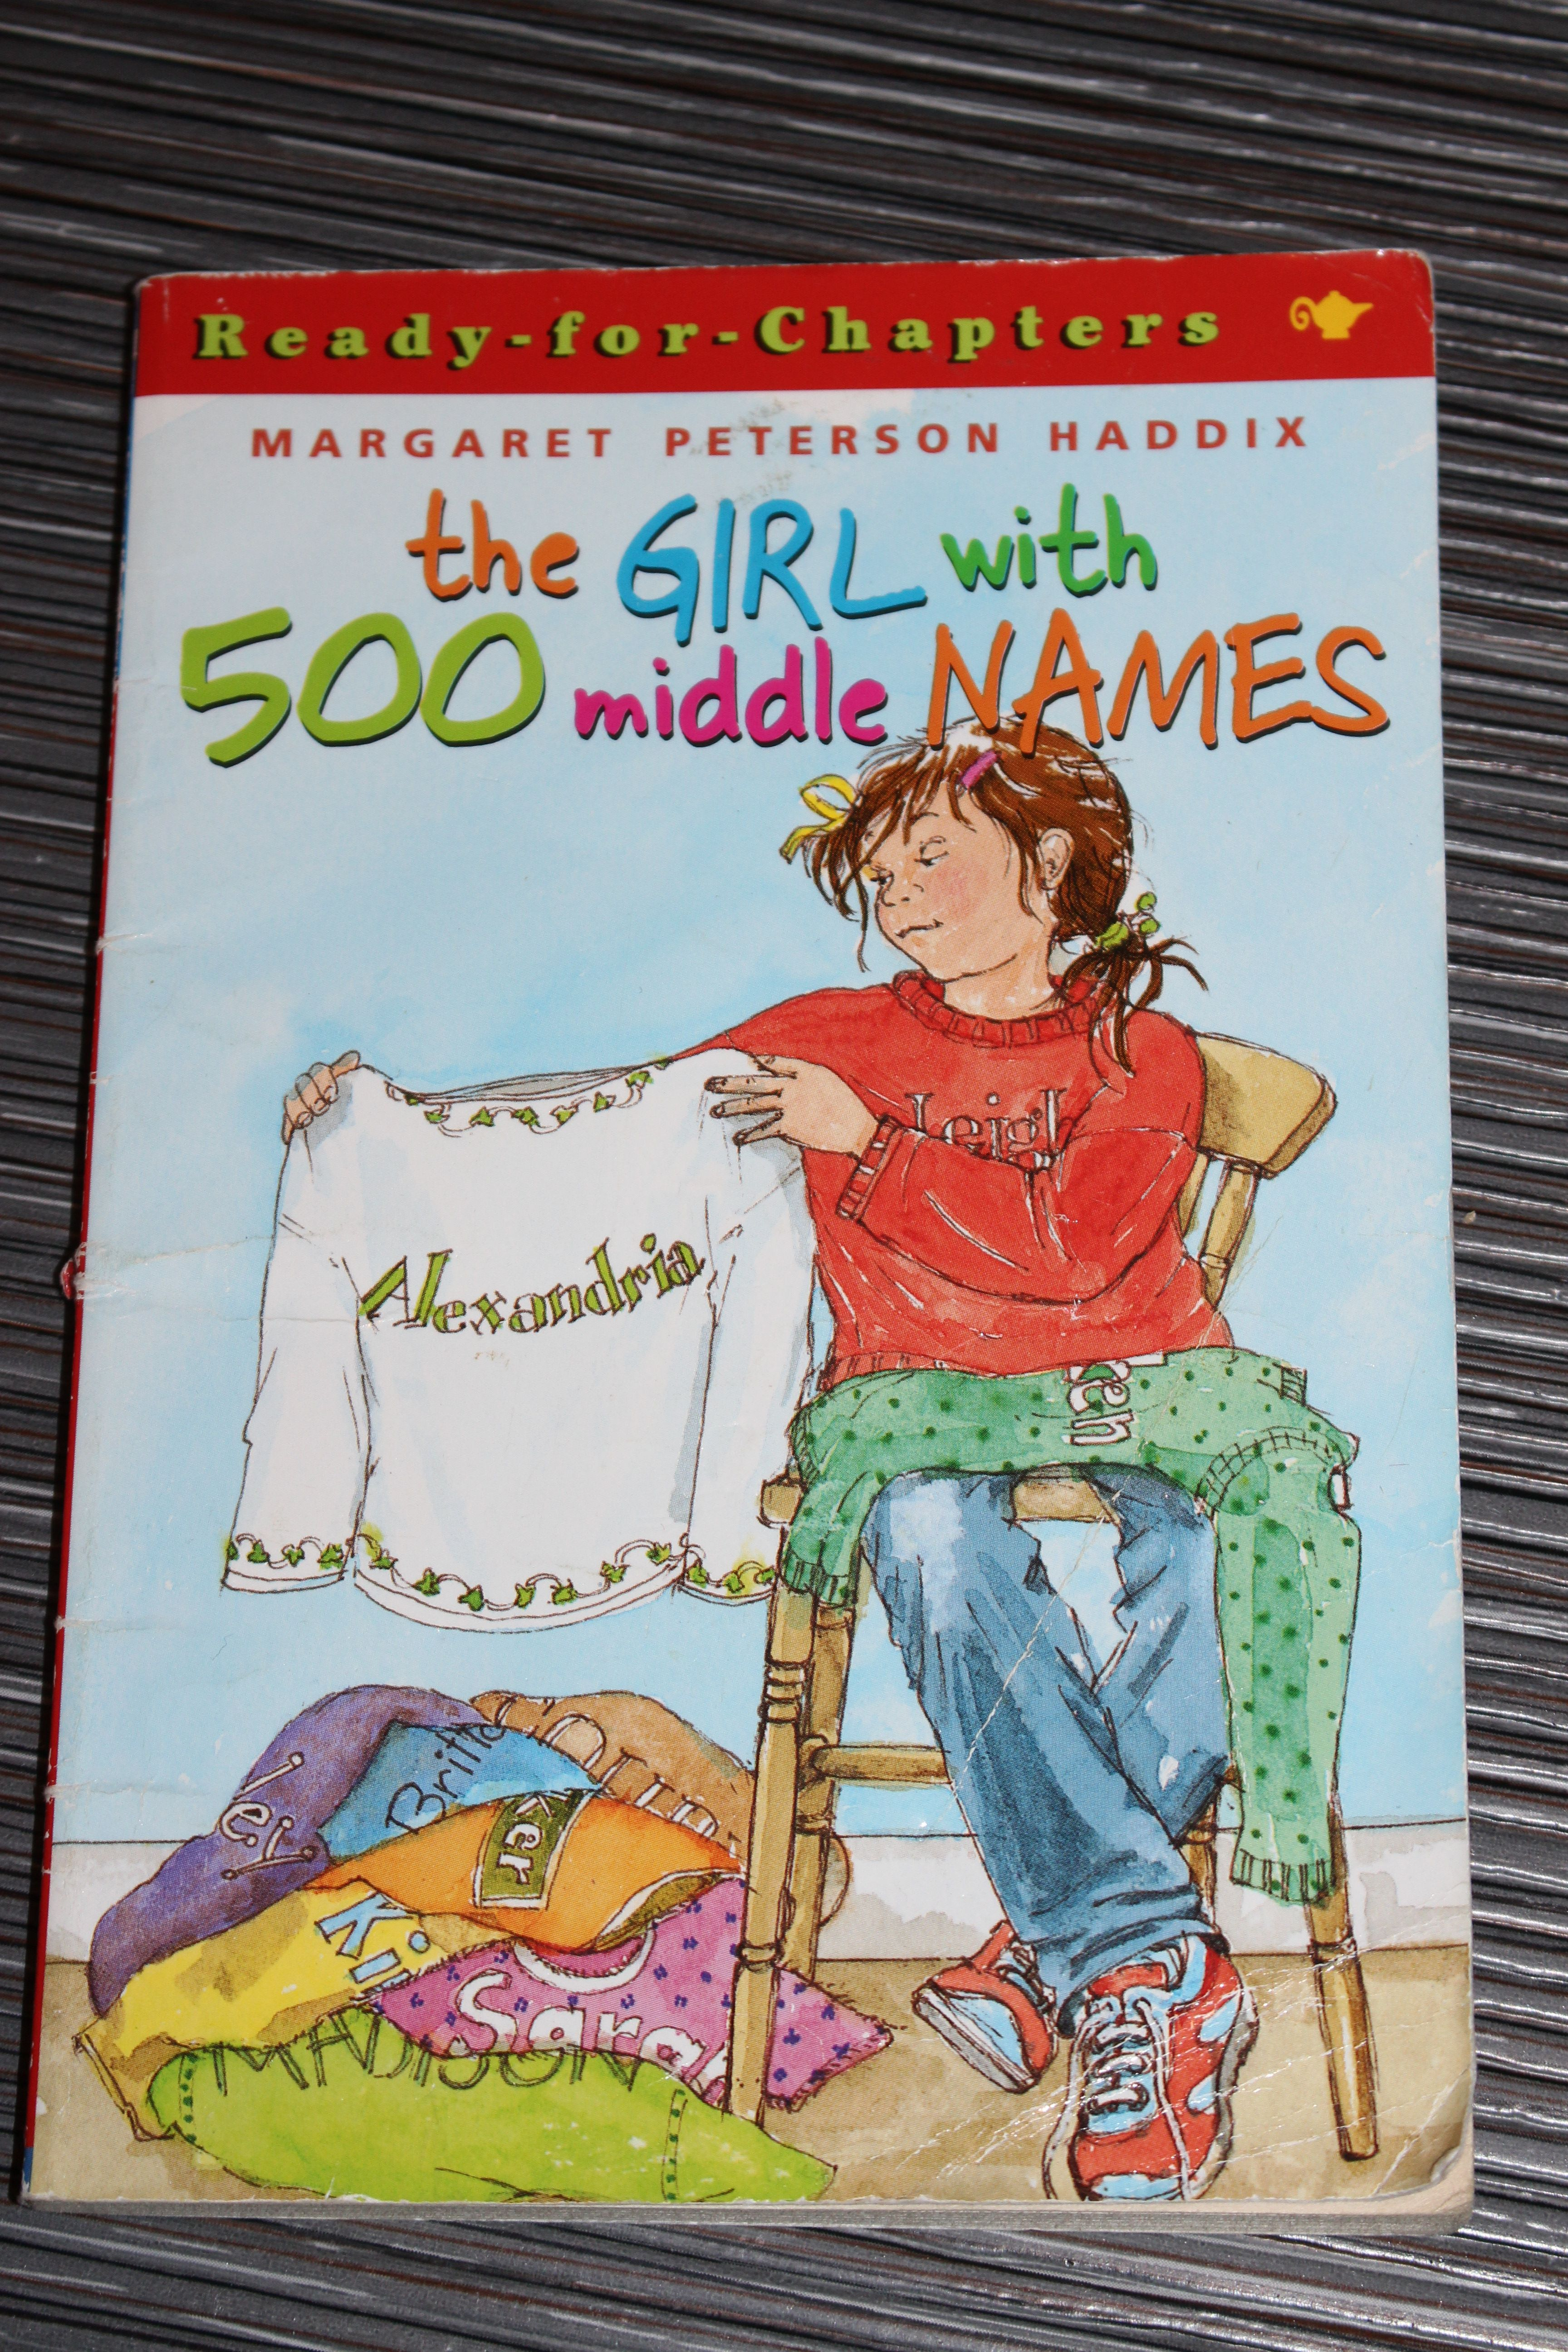 The Girl With 500 Middle Names Author Margaret Peterson Haddix